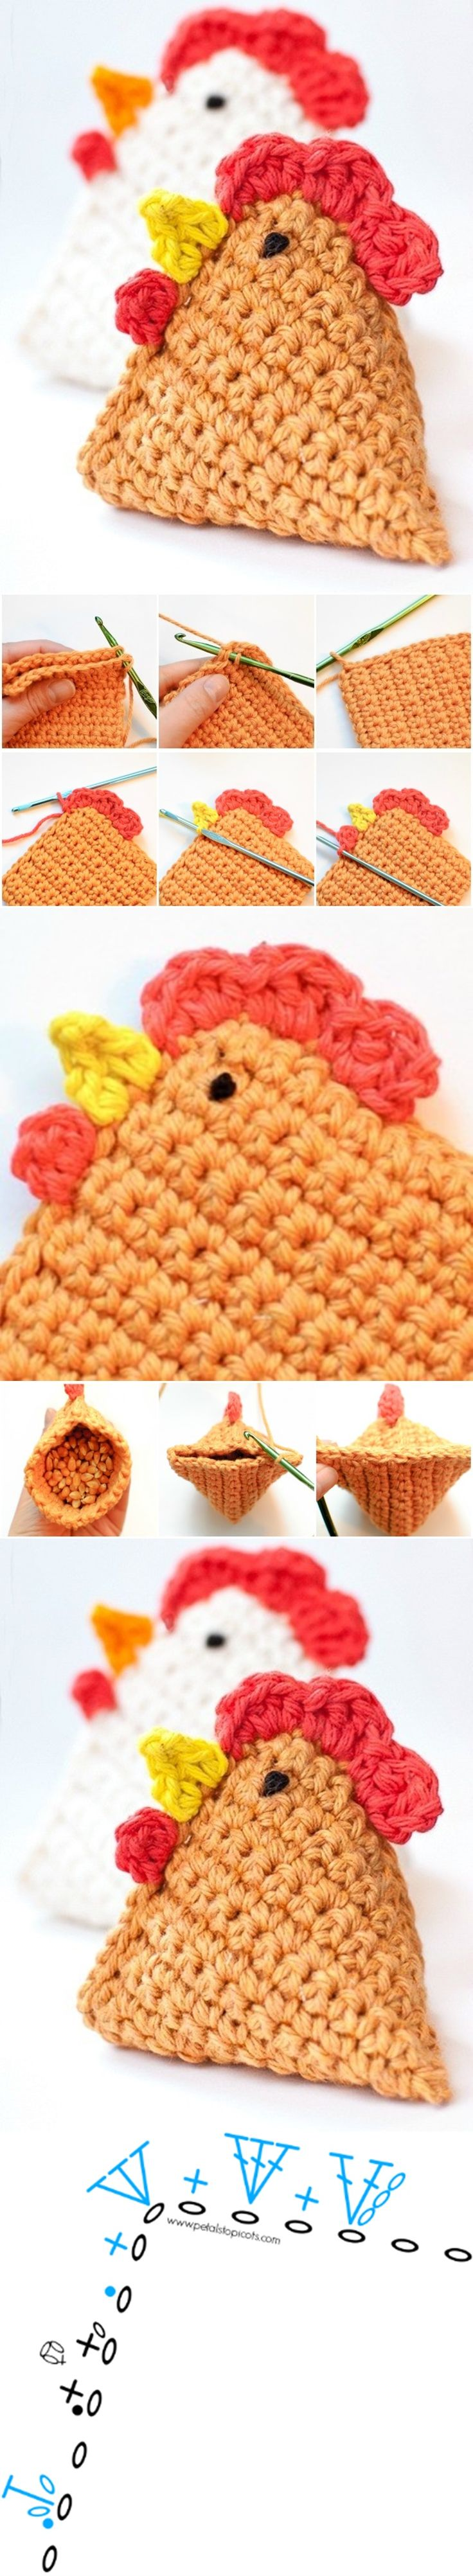 DIY Crochet Chicken Beanbag | www.FabArtDIY.com LIKE Us on Facebook ==> https://www.facebook.com/FabArtDIY